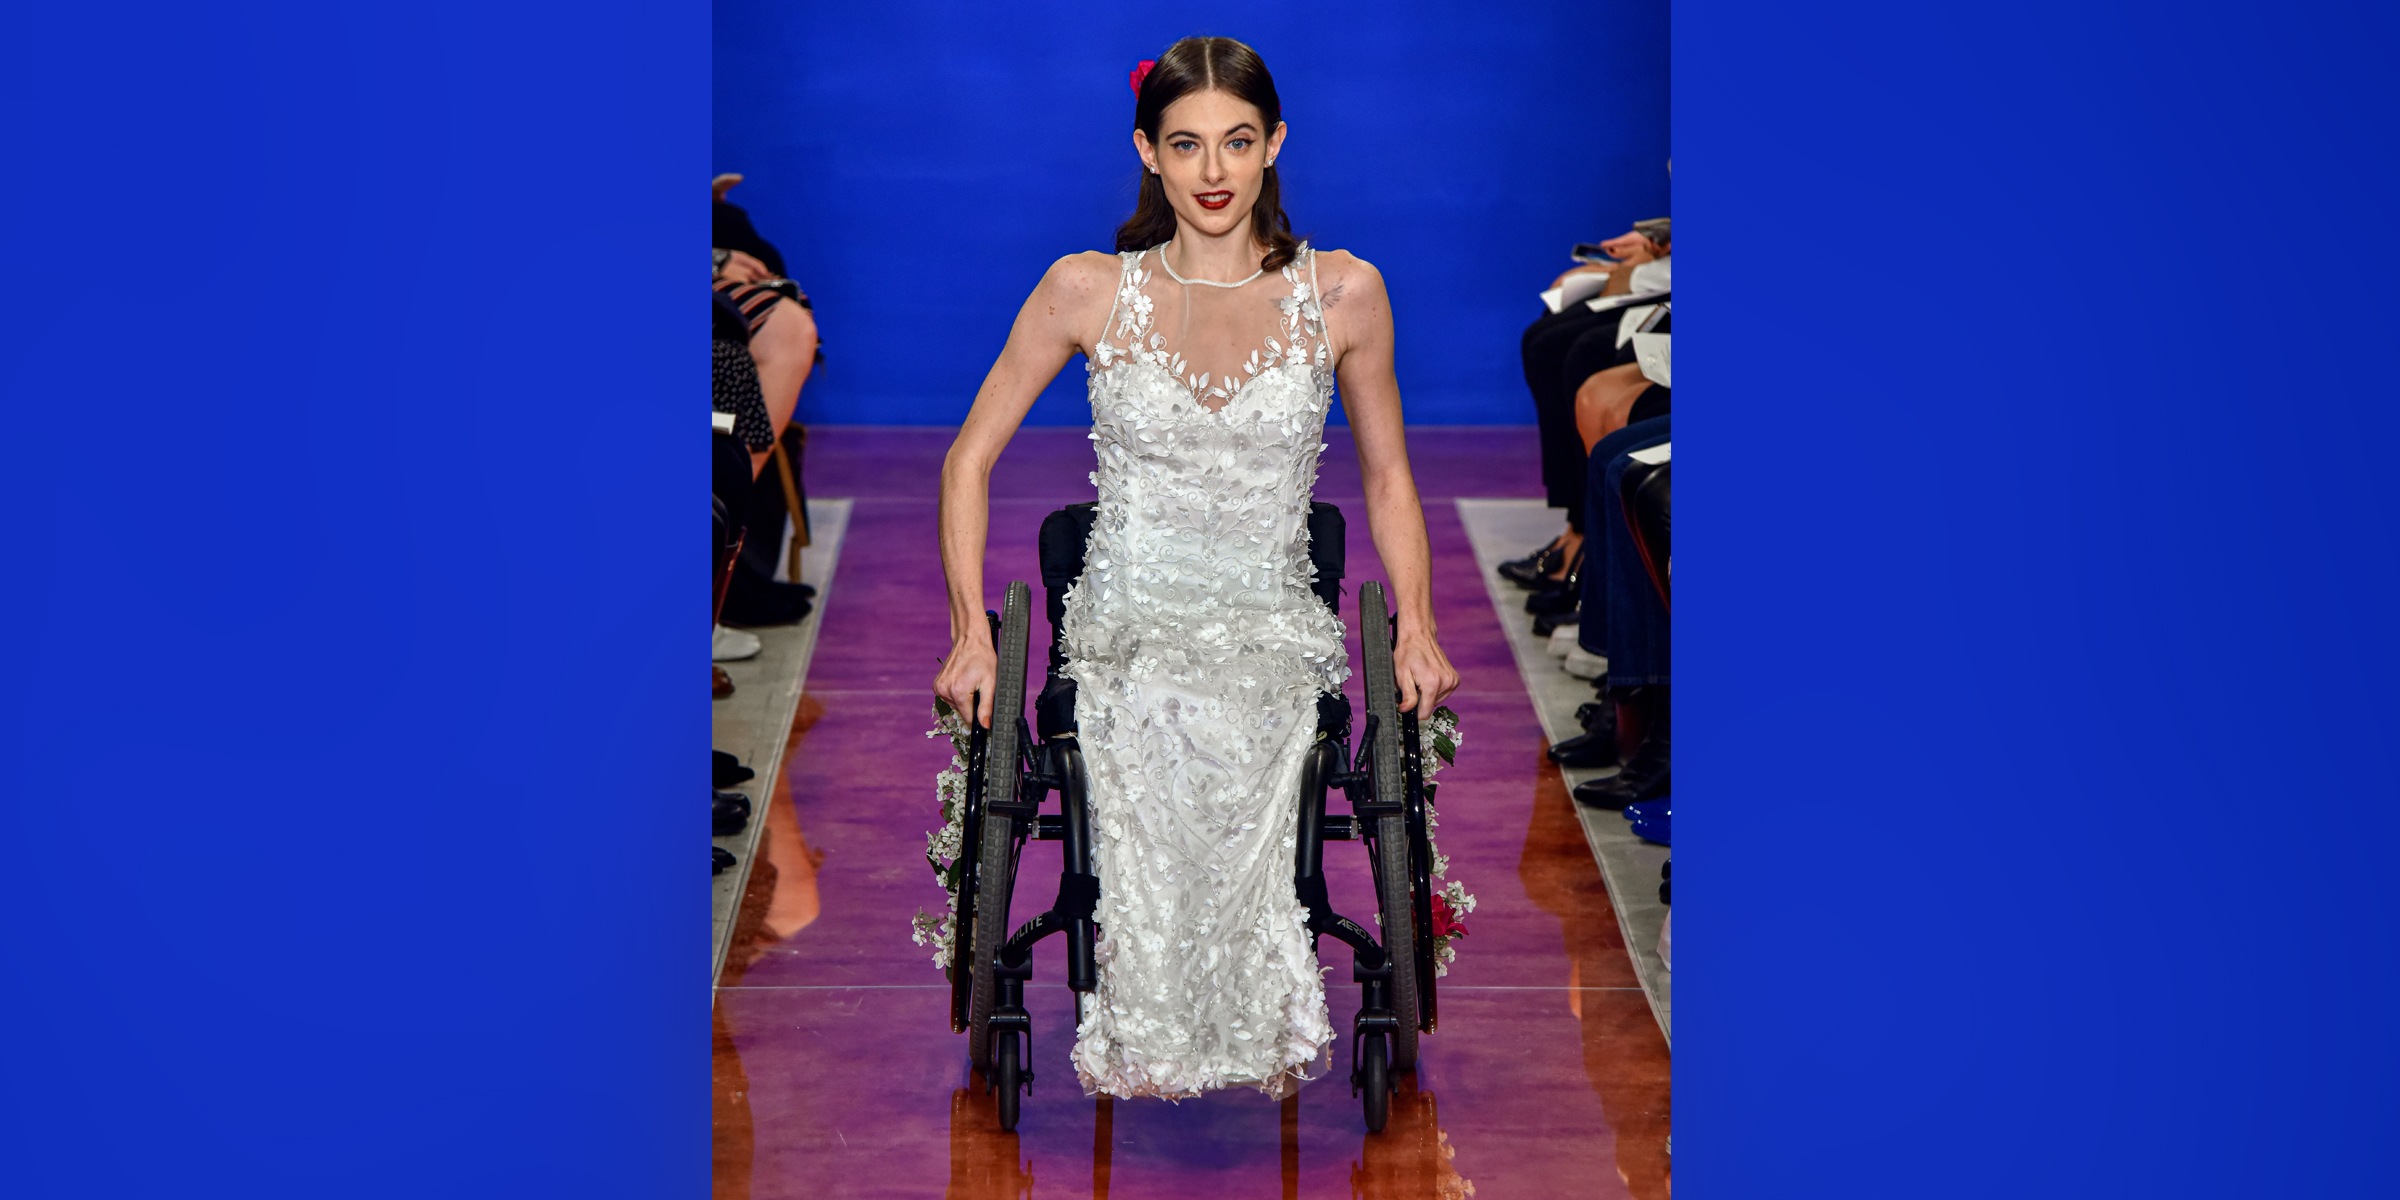 Model in wheelchair shares what it meant to be a part of New York Bridal Fashion Week